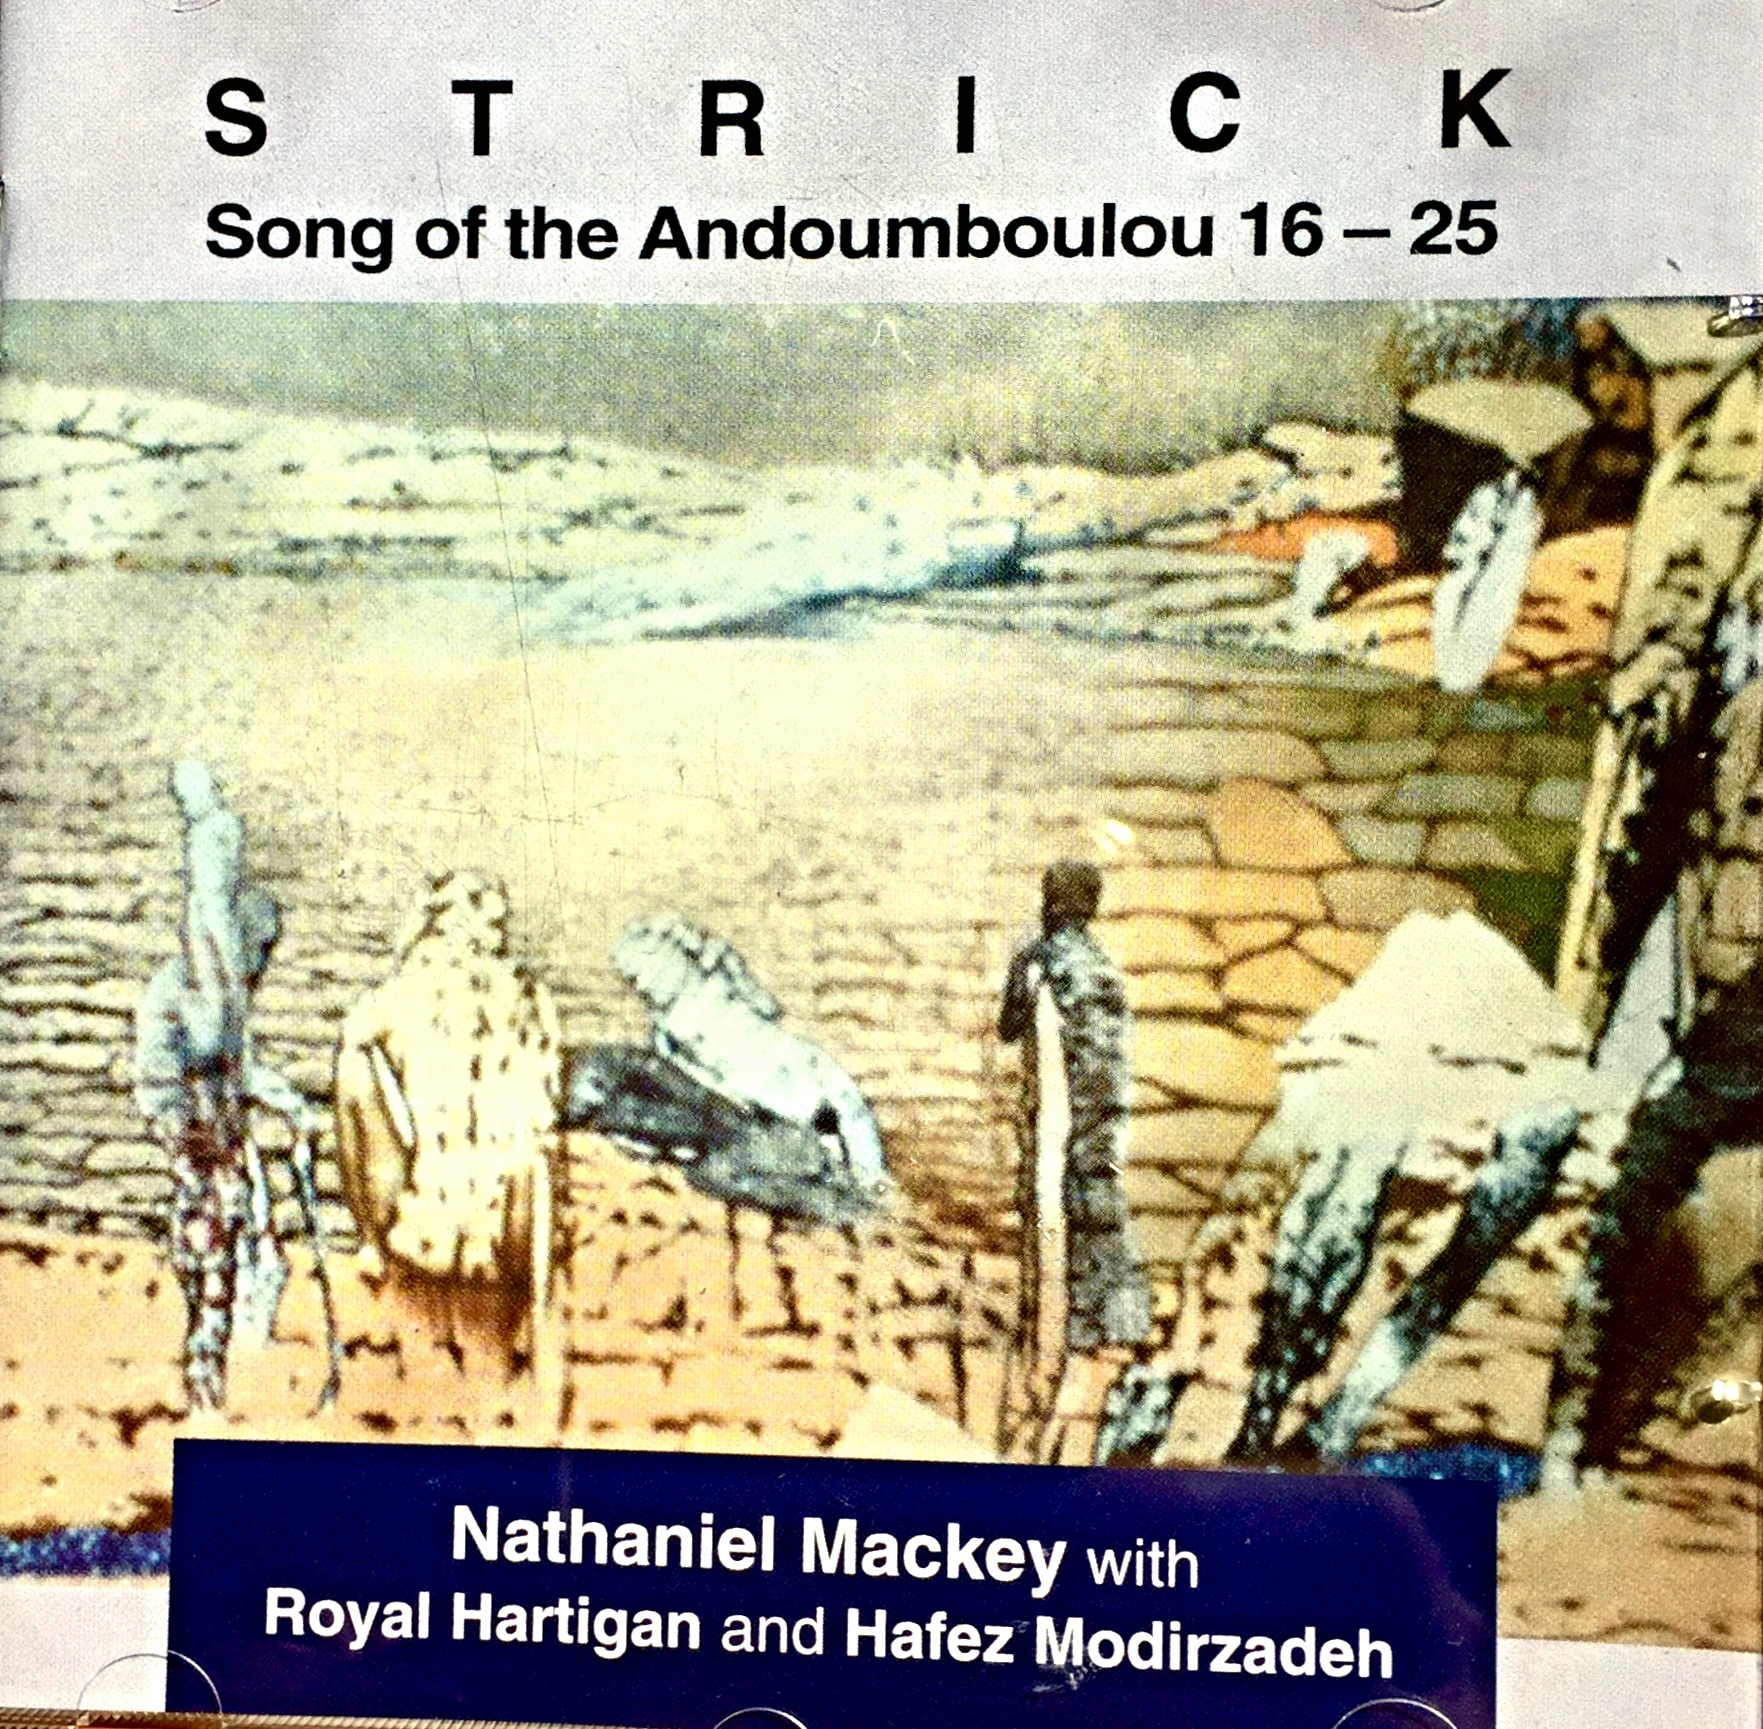 Nathaniel Mackey reads Strick: Song of the Andoumboulou 16-25 with musicians Royal Hartigan and Hafez Modirzadeh (Copyright 1995 Spoken Engine Co.)